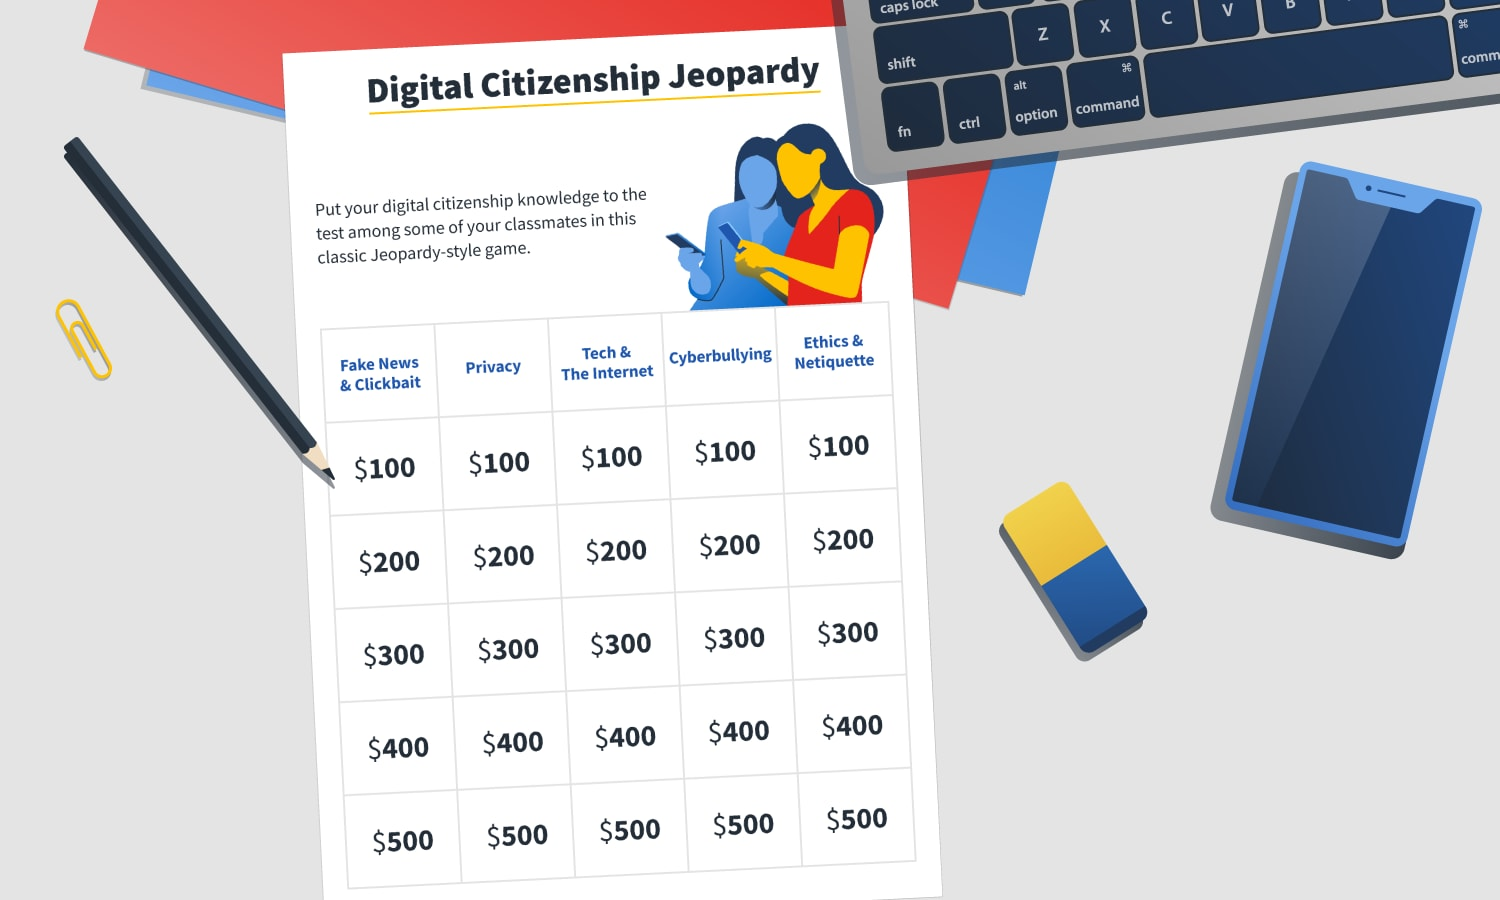 printable digital citizenship jeopardy-style game